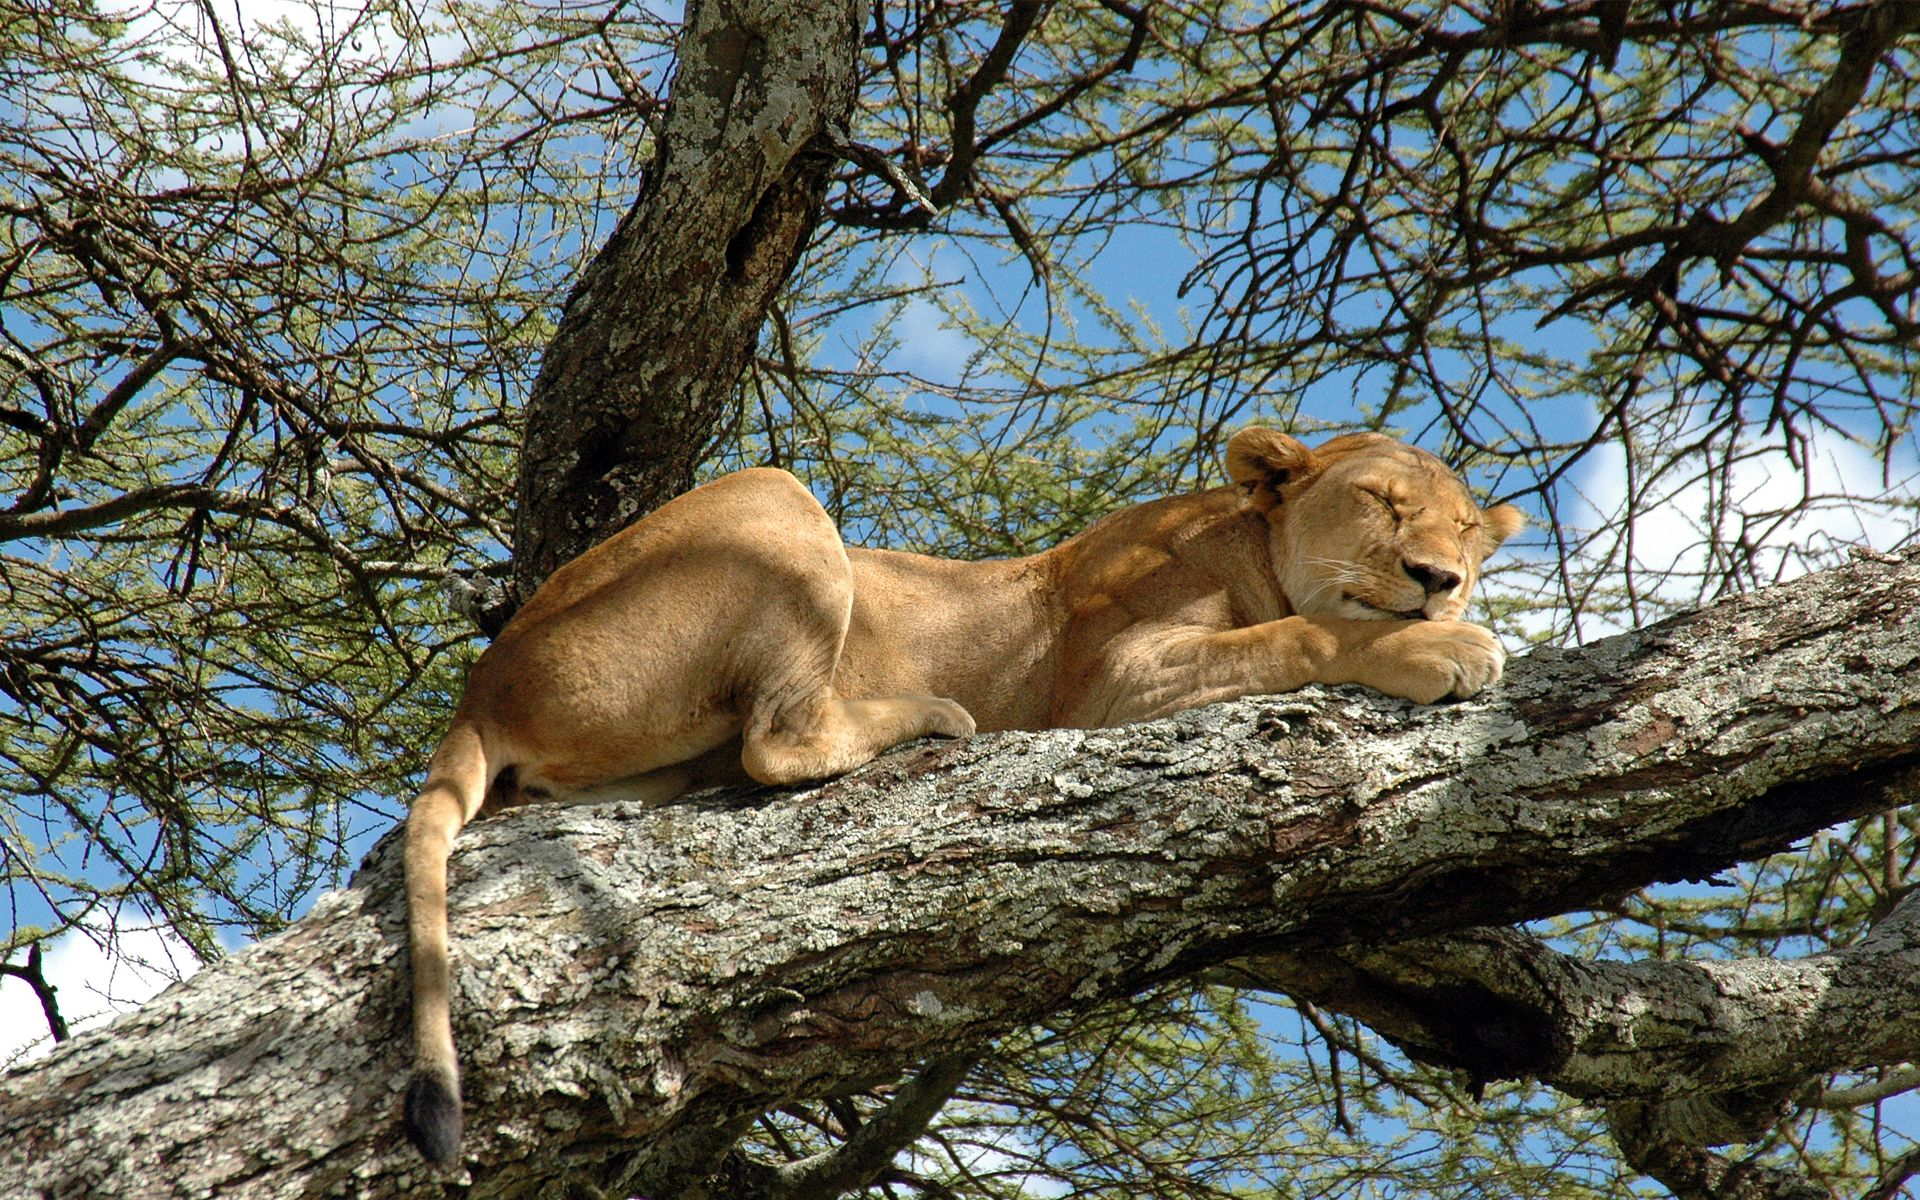 lion sleeping on a branch high in a tree in Lake Manyara